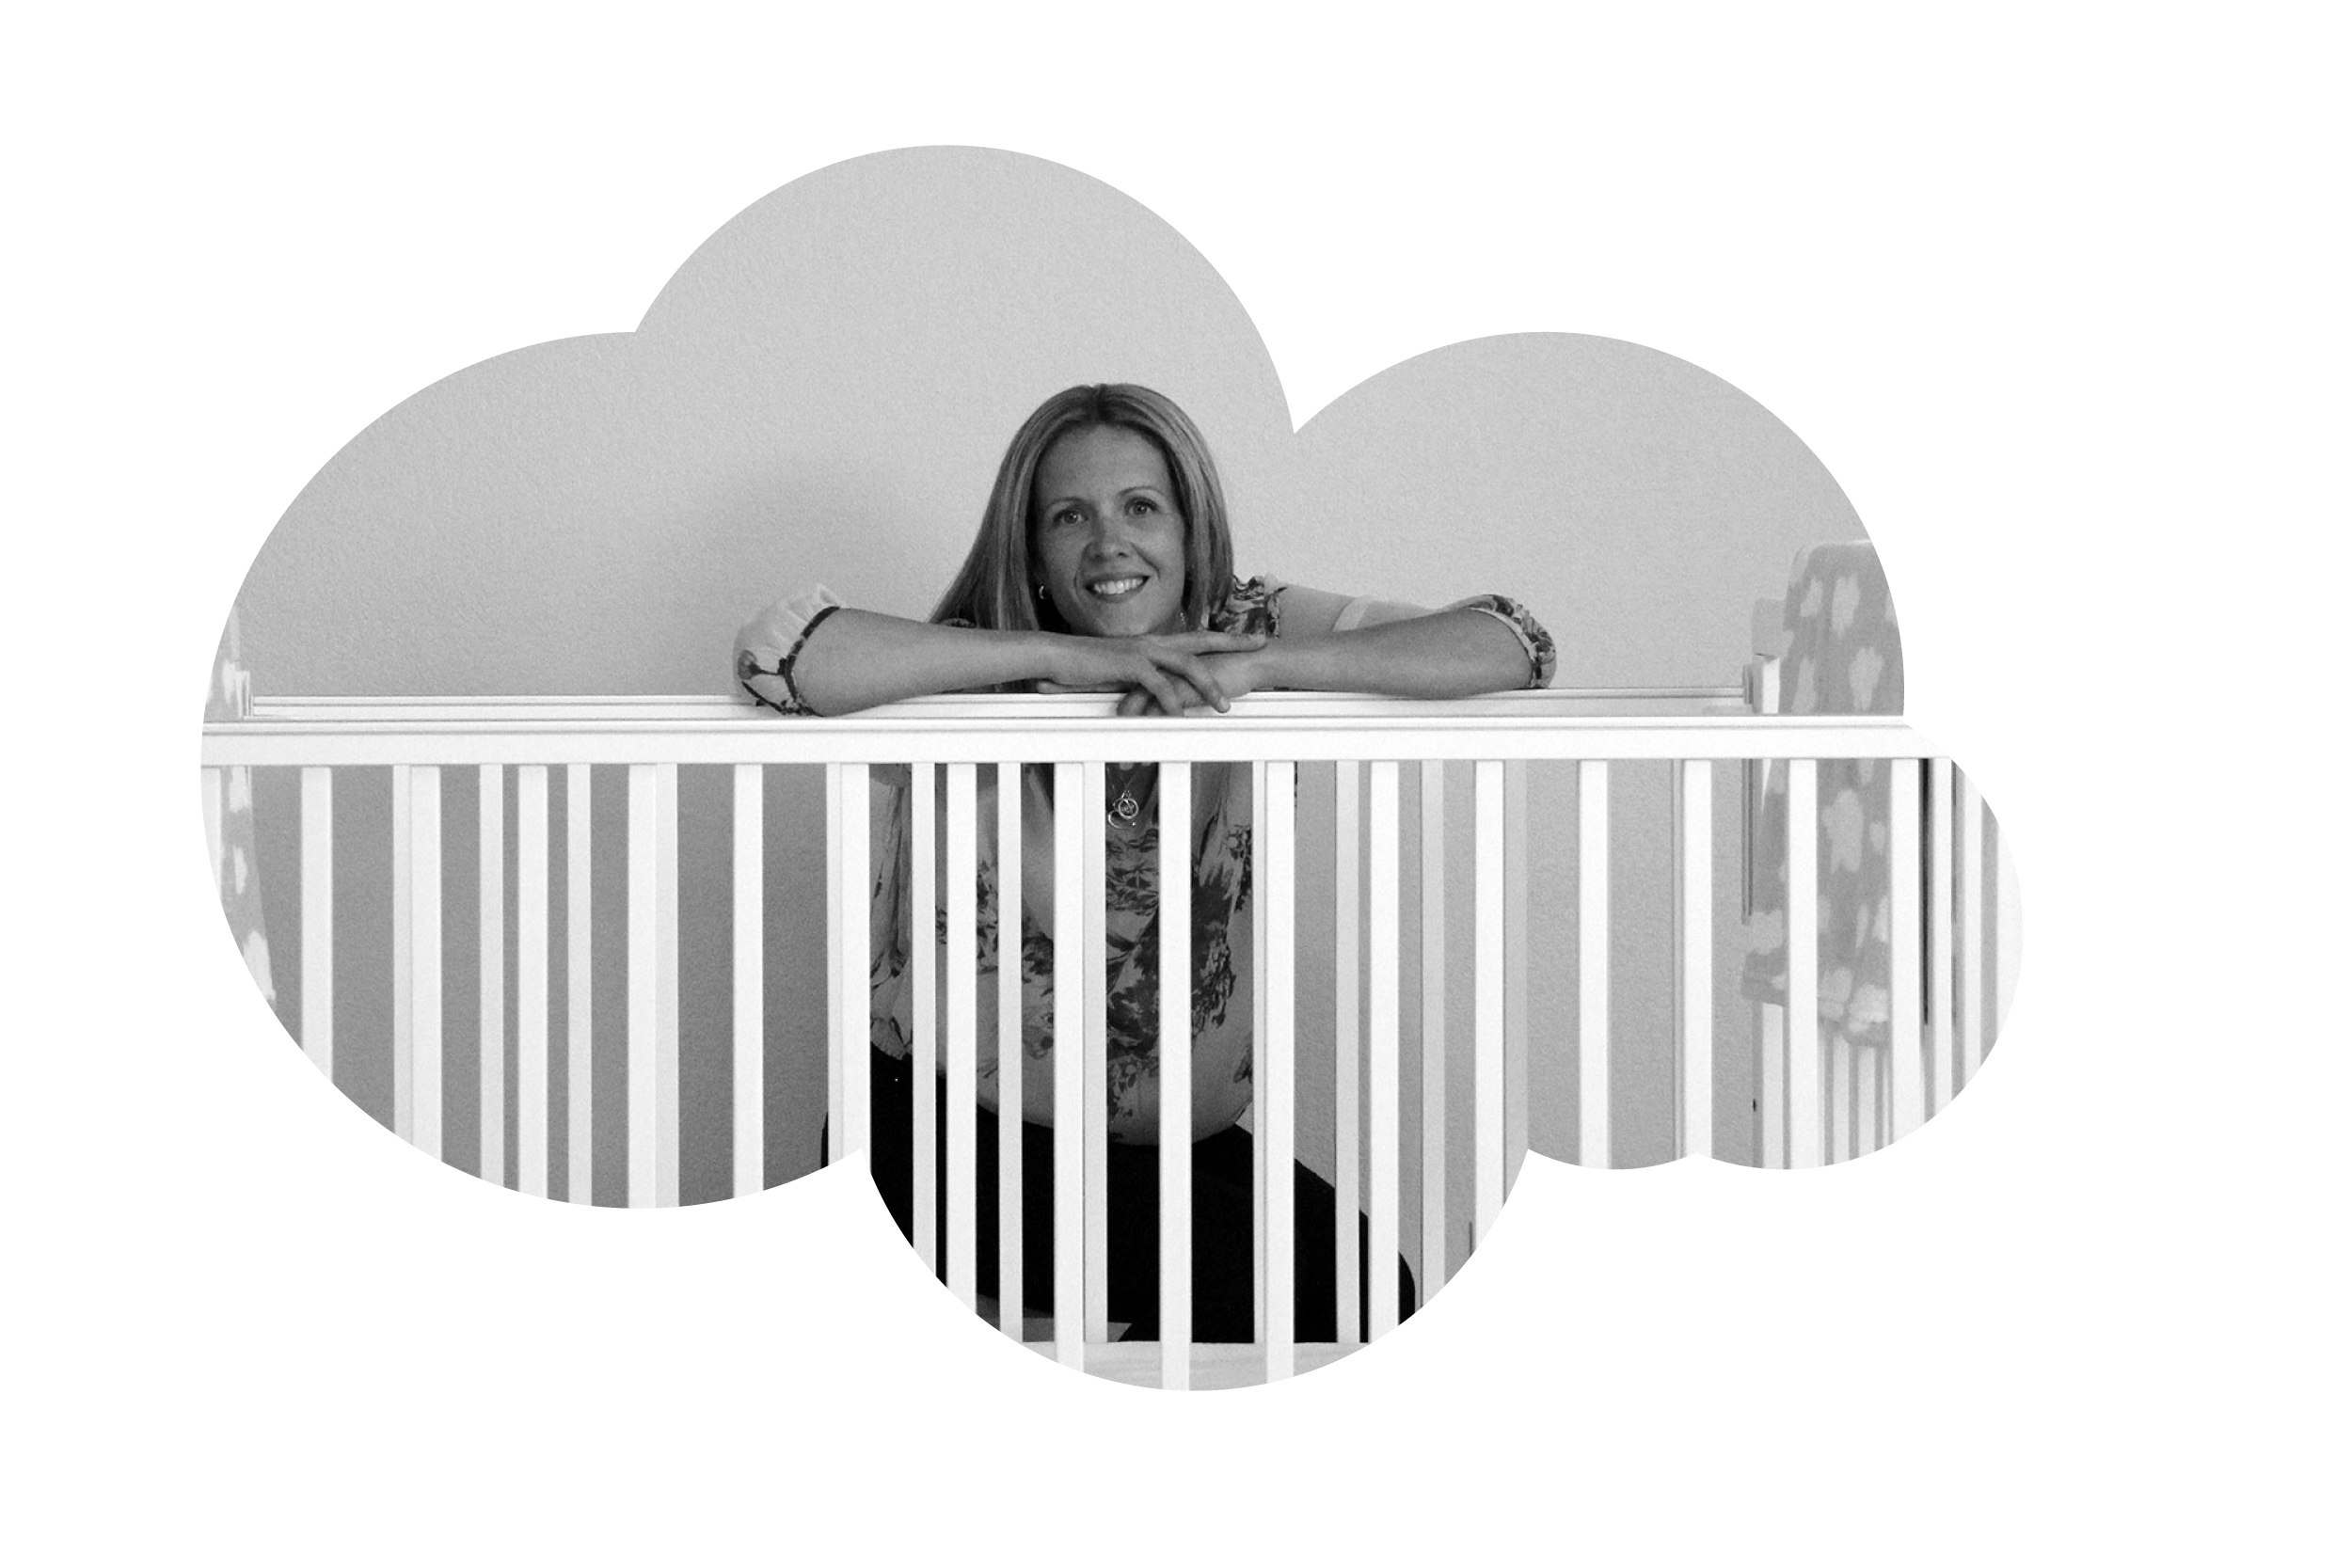 Jamesie-Crib-for-cloud.jpg